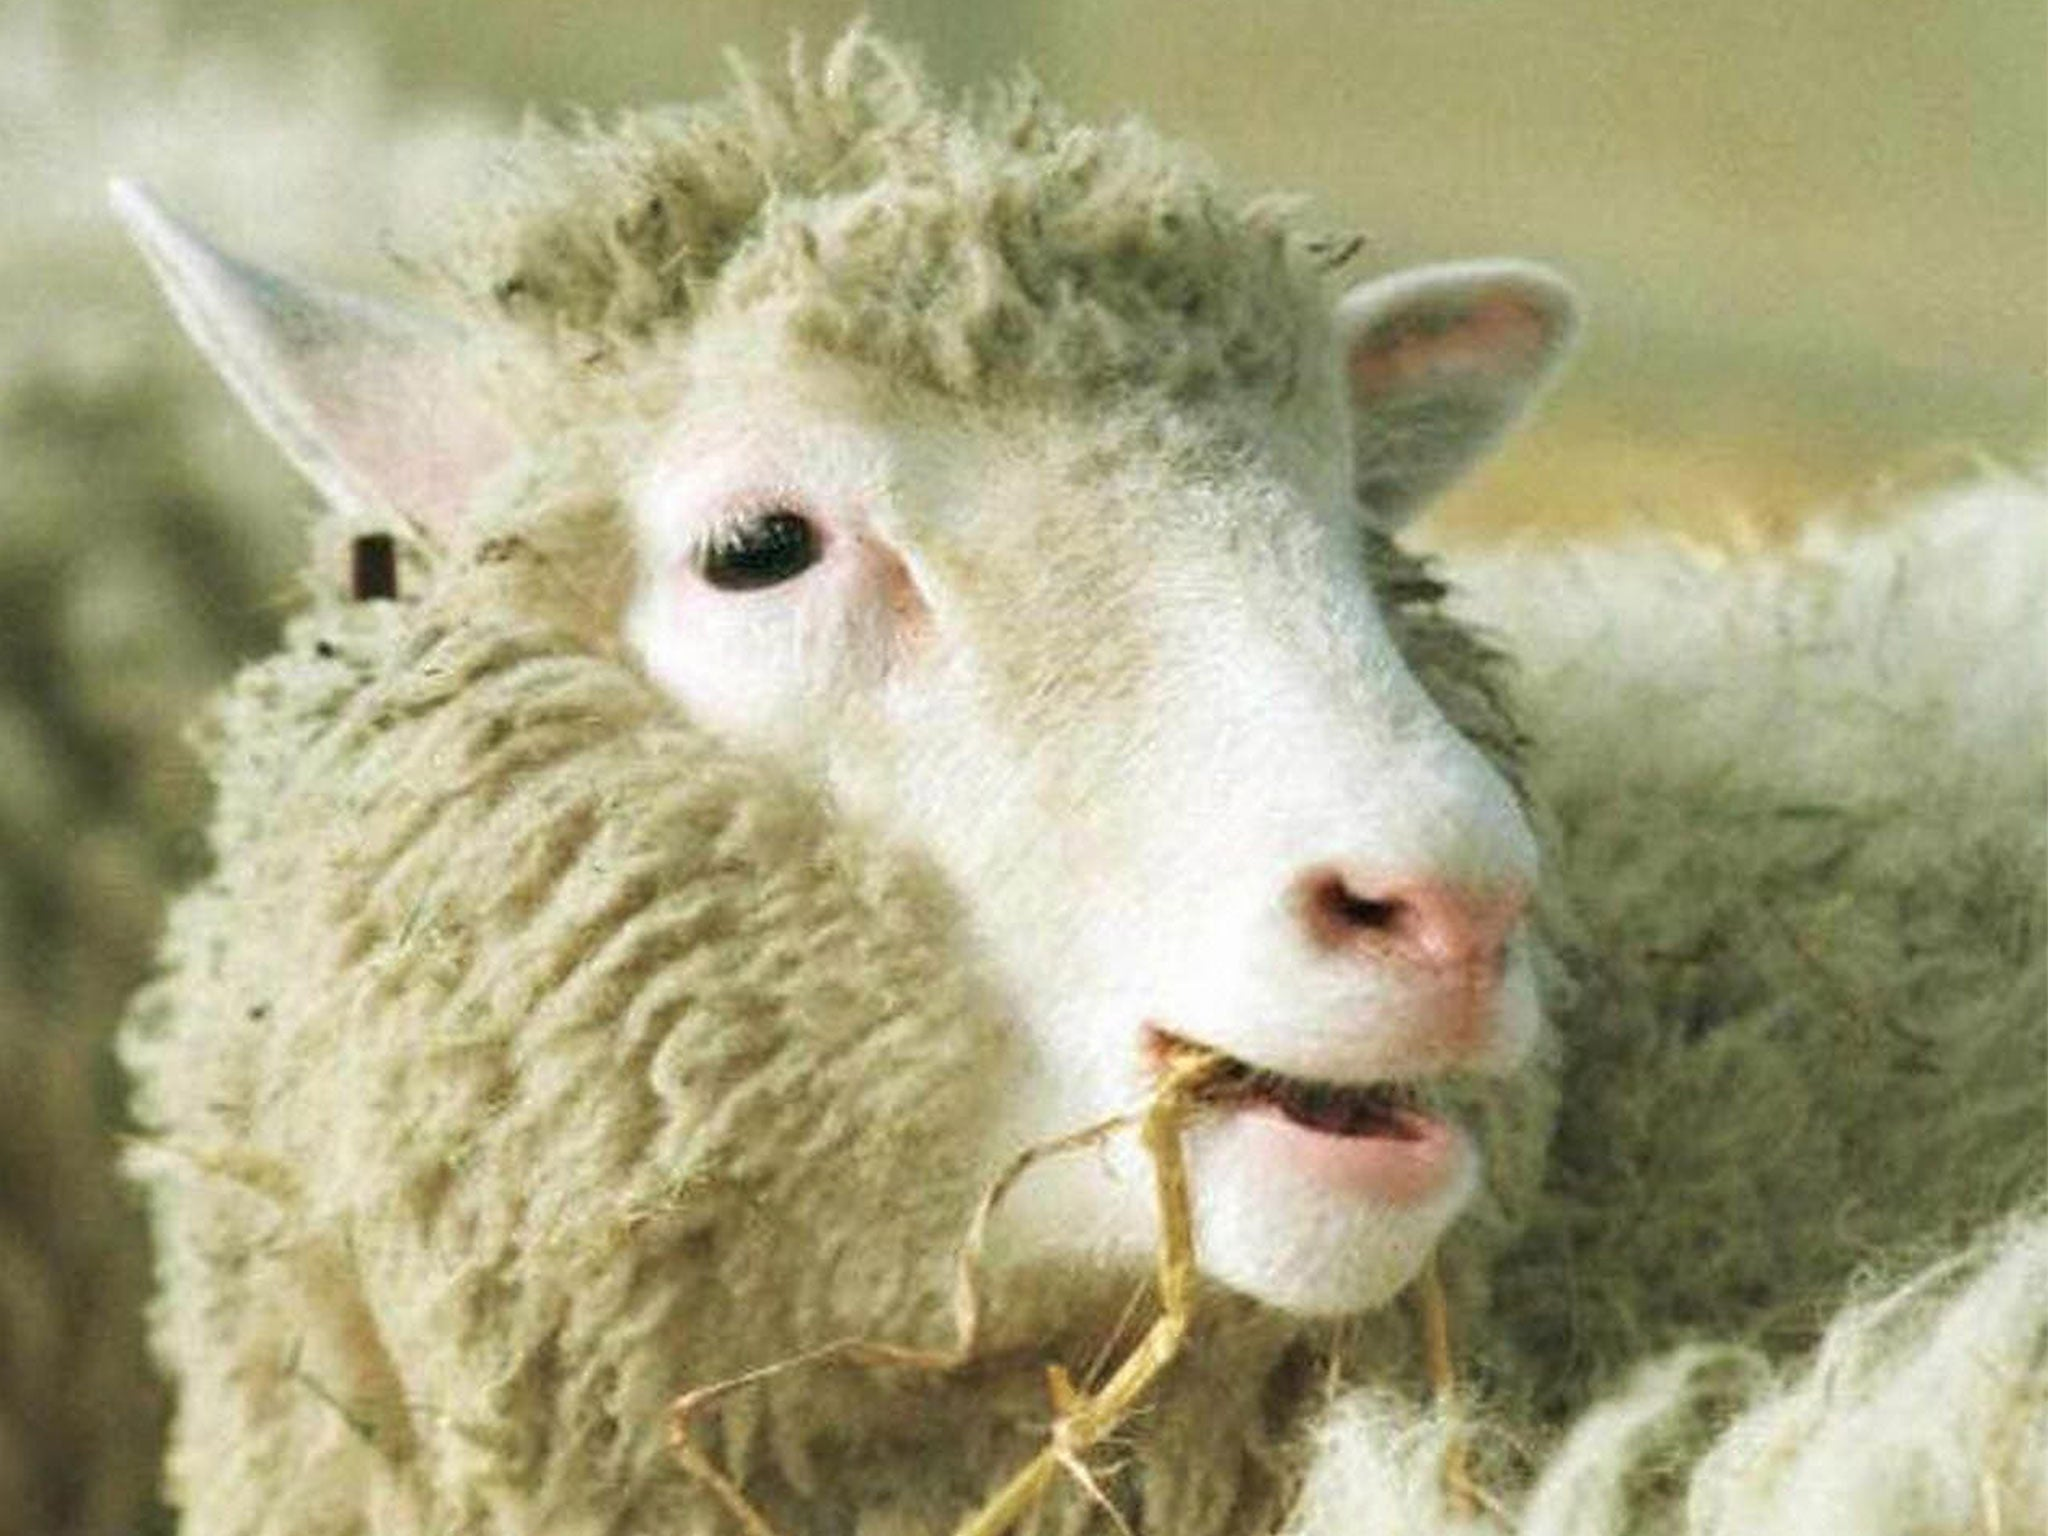 Dolly The Sheep 15 Years After Her Death Cloning Still Has The Power To Shock The Independent The Independent